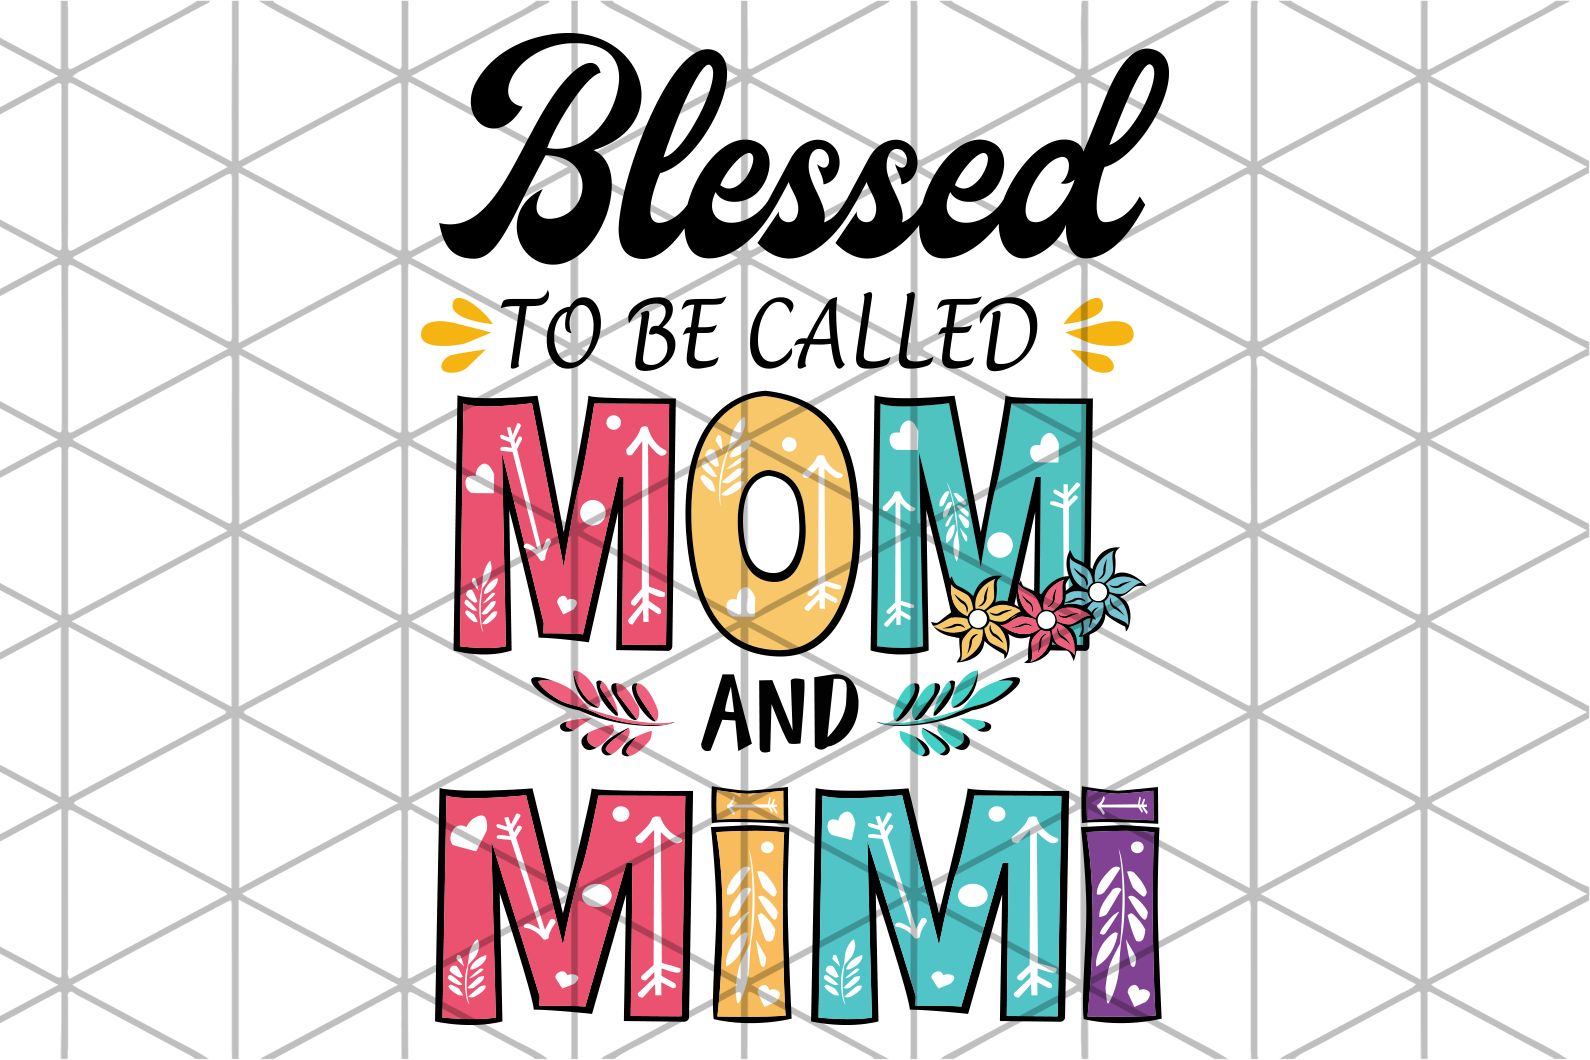 Blessed to be called mom and mimi,  mimi svg, mimi gift, mimi birthday, mimi life, best mimi ever, family svg, family shirt,family gift,trending svg, Files For Silhouette, Files For Cricut, SVG, DXF, EPS, PNG, Instant Download